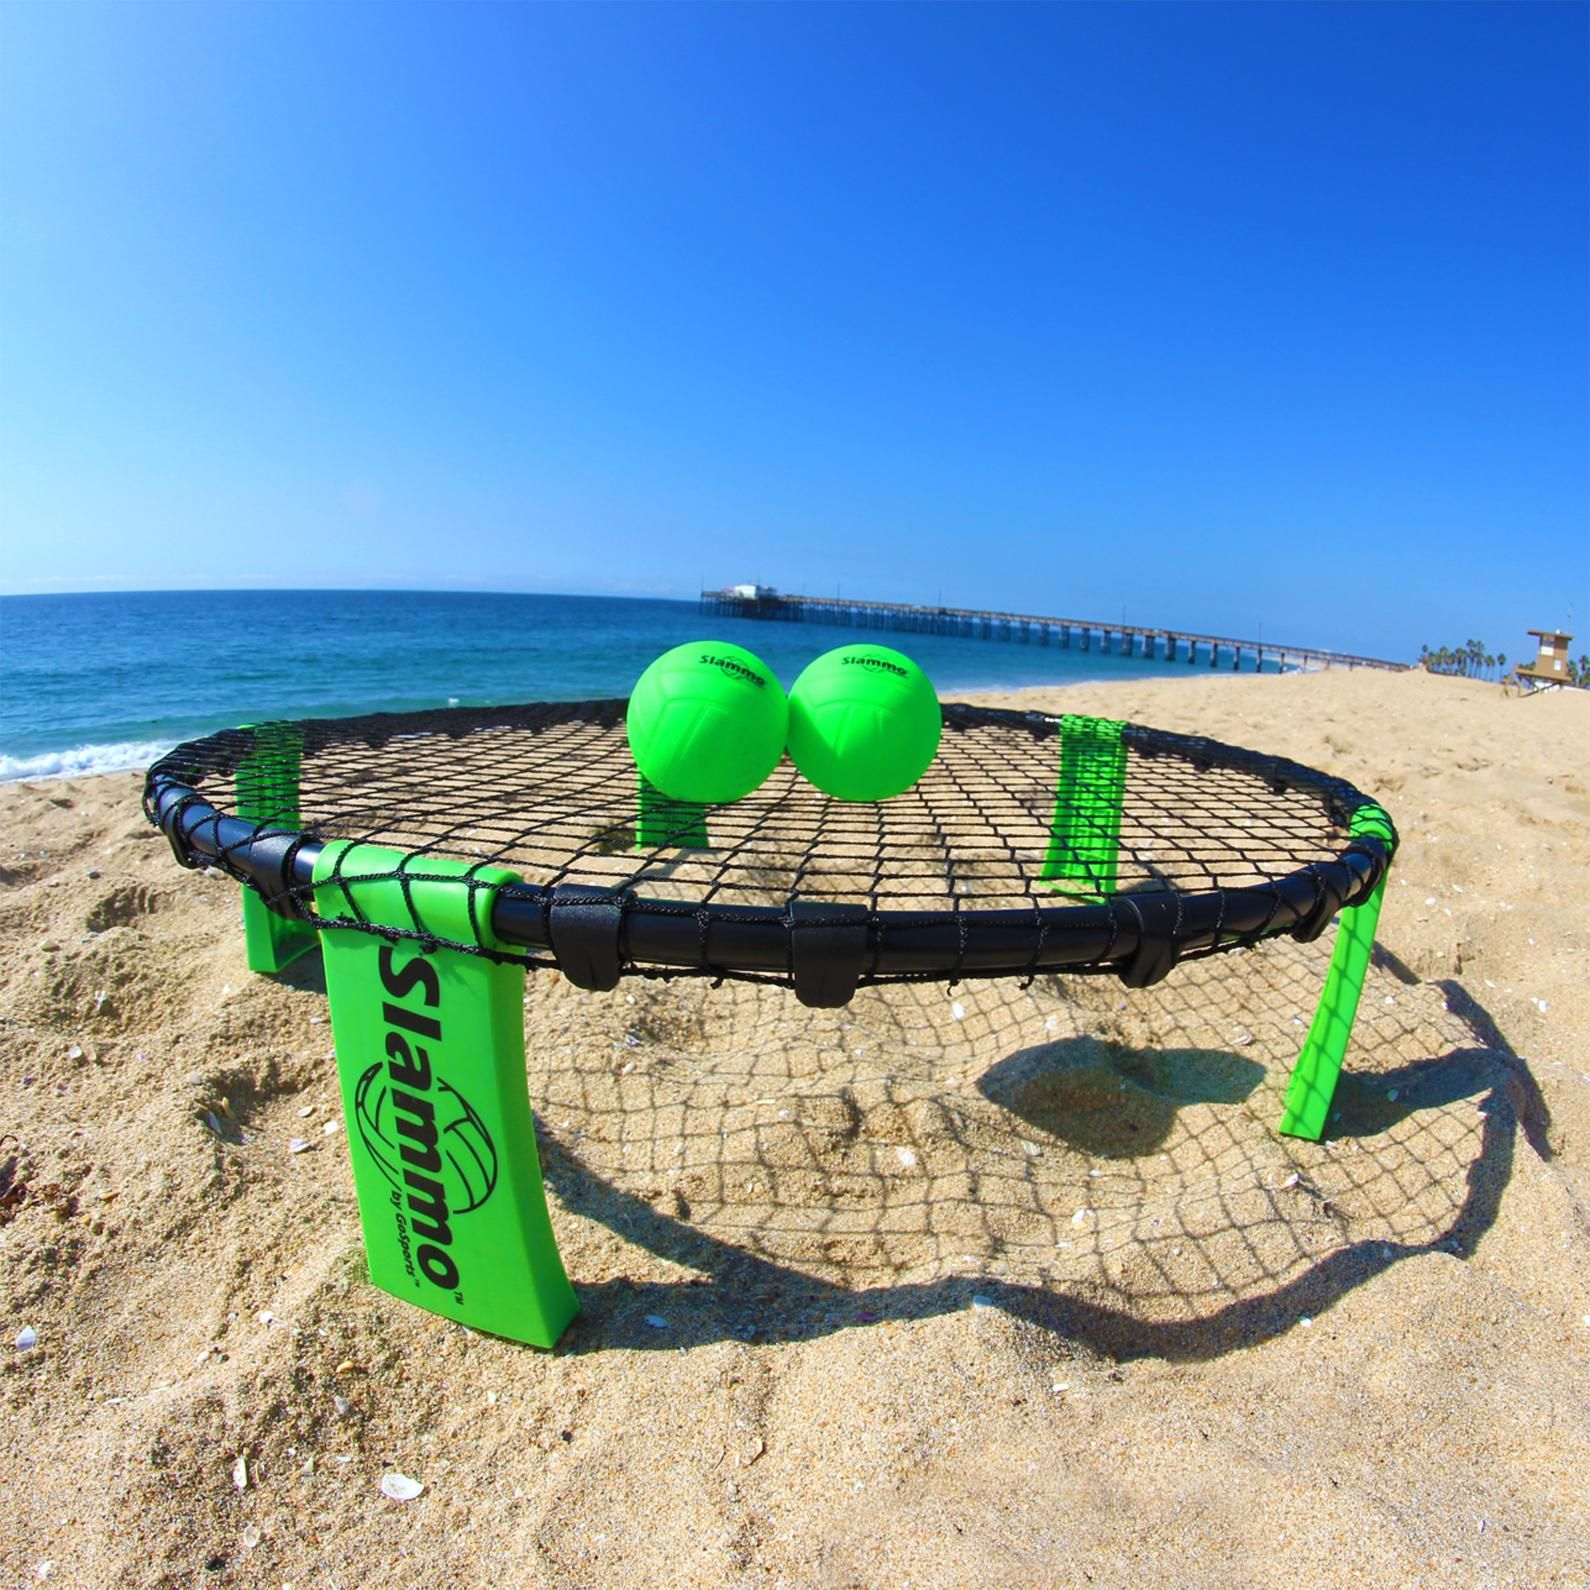 Gosports Slammo Set Includes 3 Carrying Case And Rules Sports Outdoors